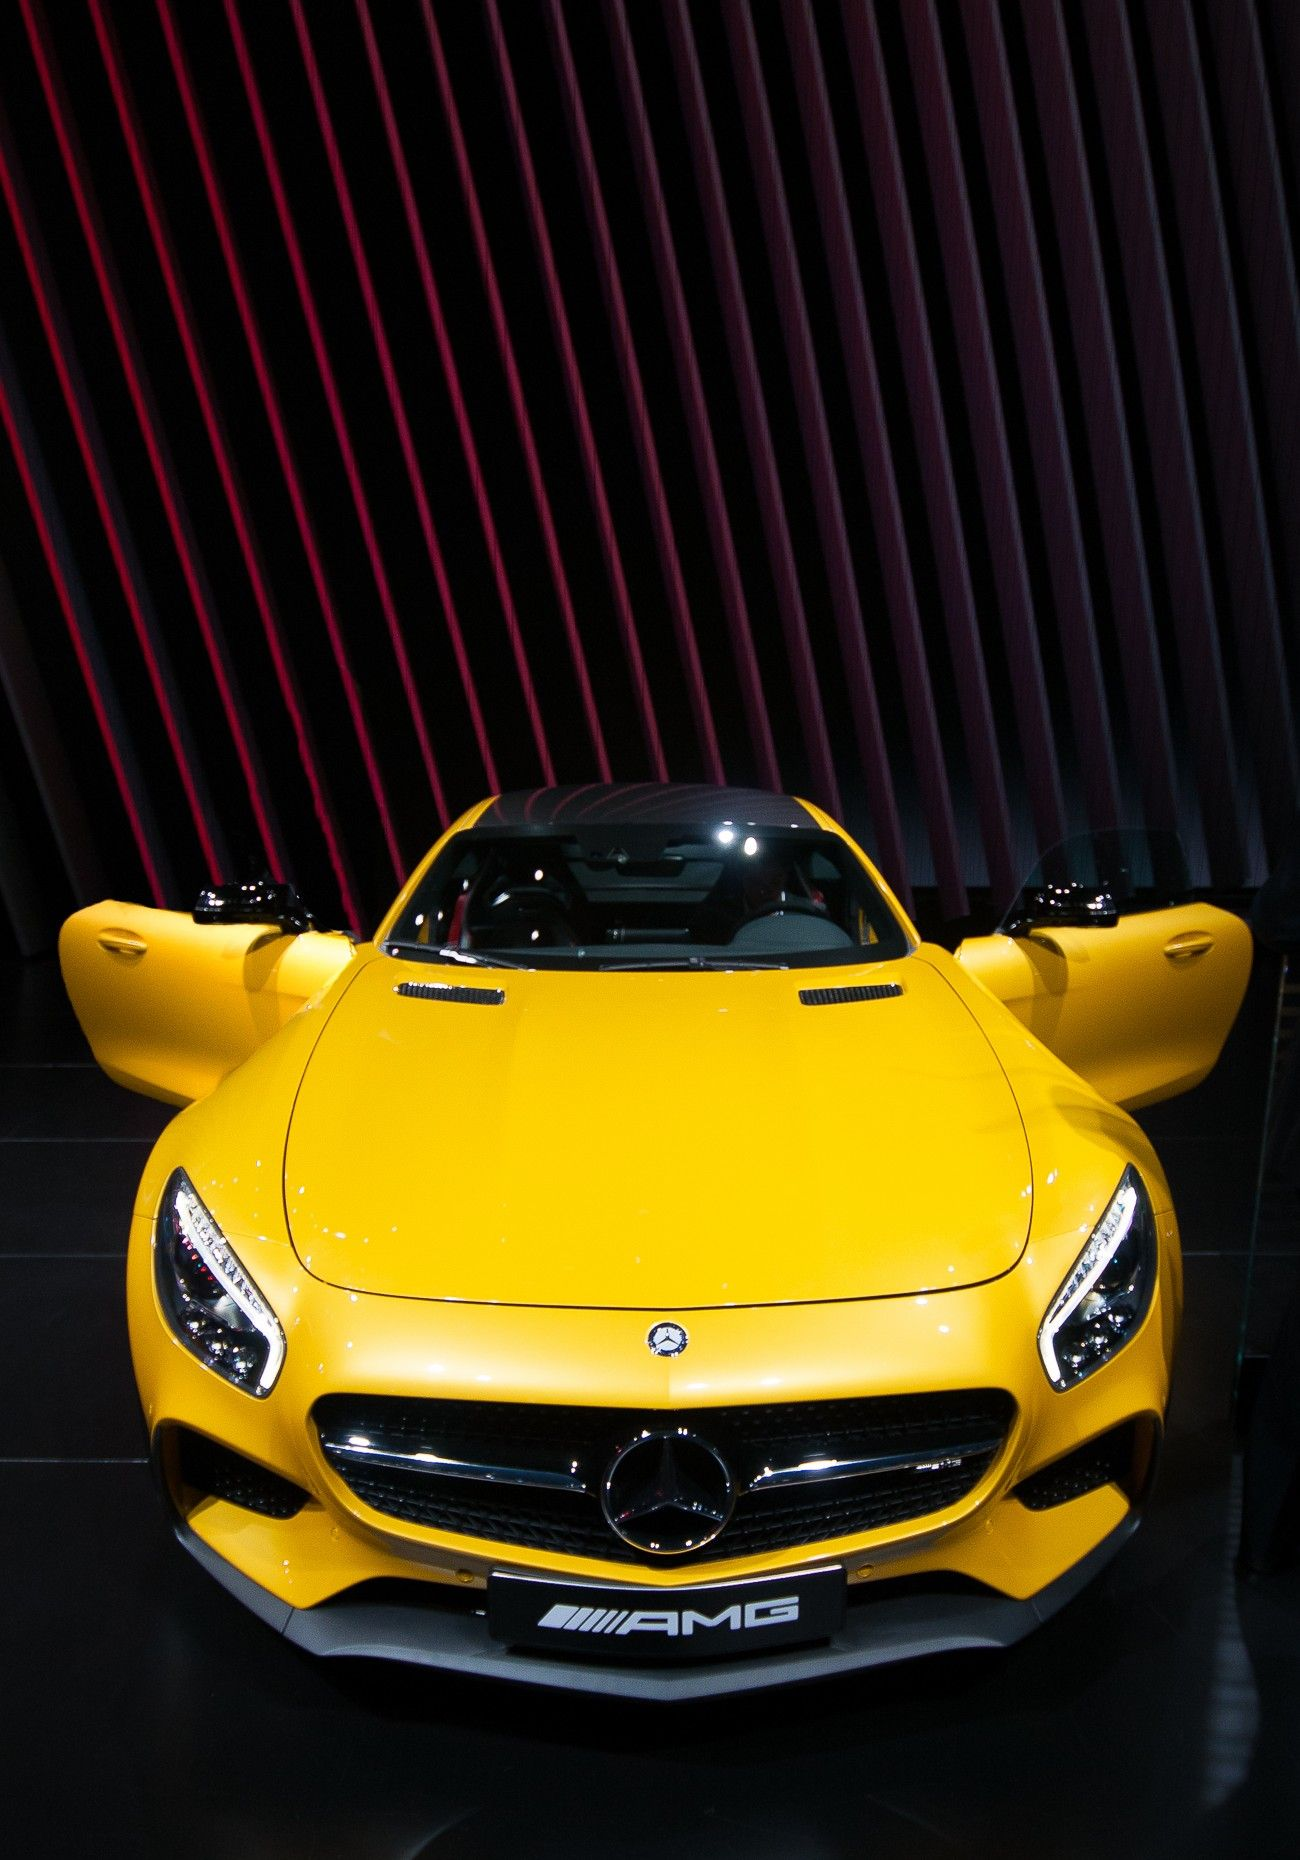 Mercedes AMG GT Gugli917 Follow my work and inspiration Pinterest